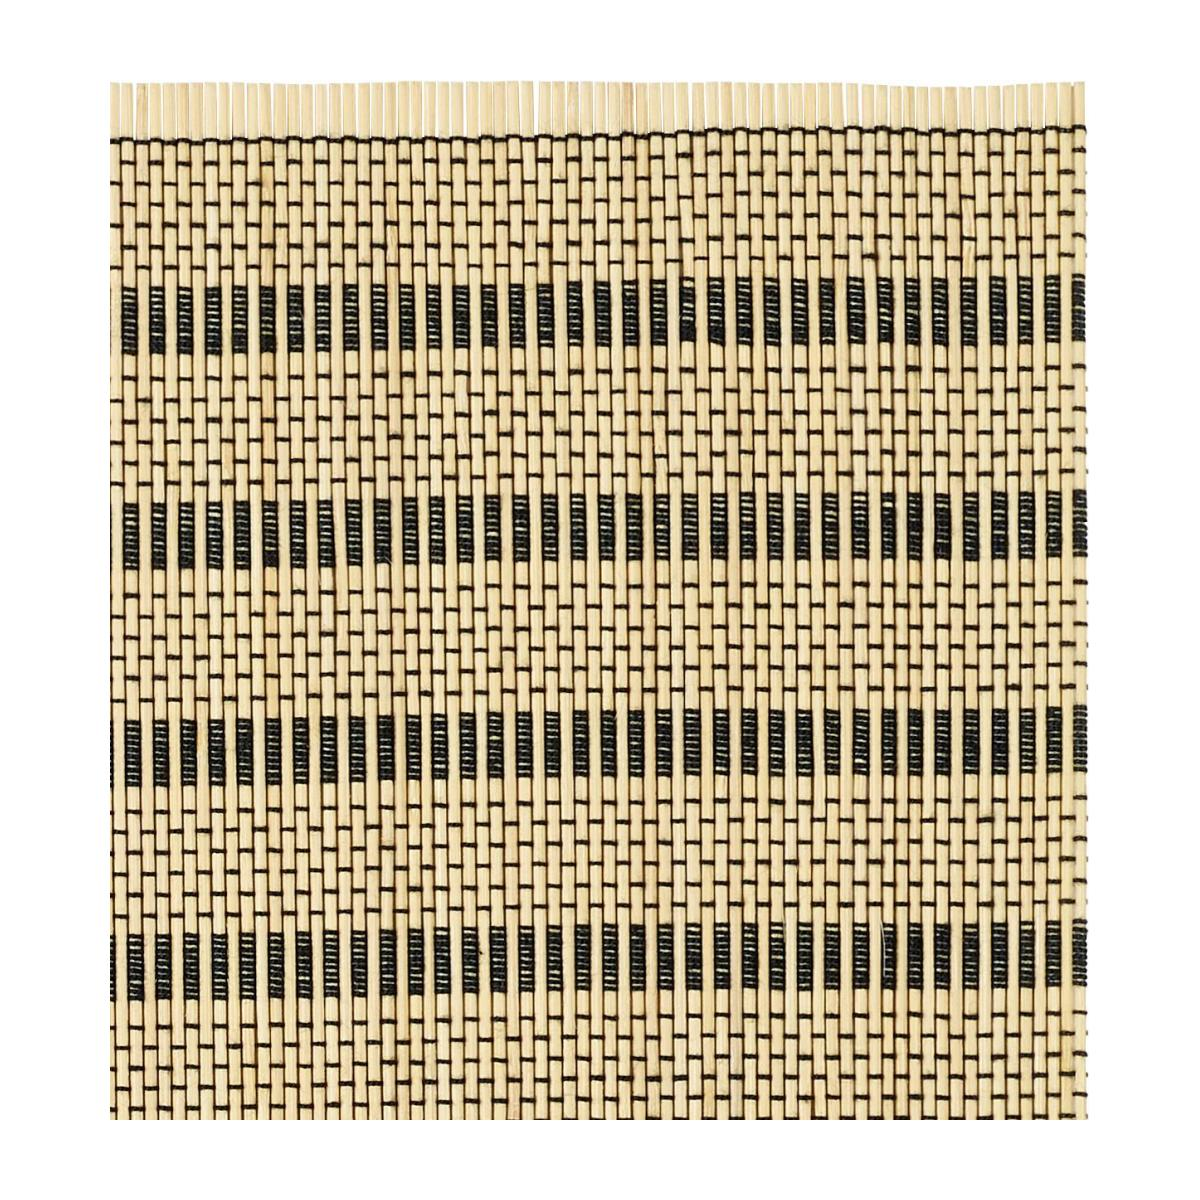 Set of 2 Black Patterned bamboo Placemats n°3